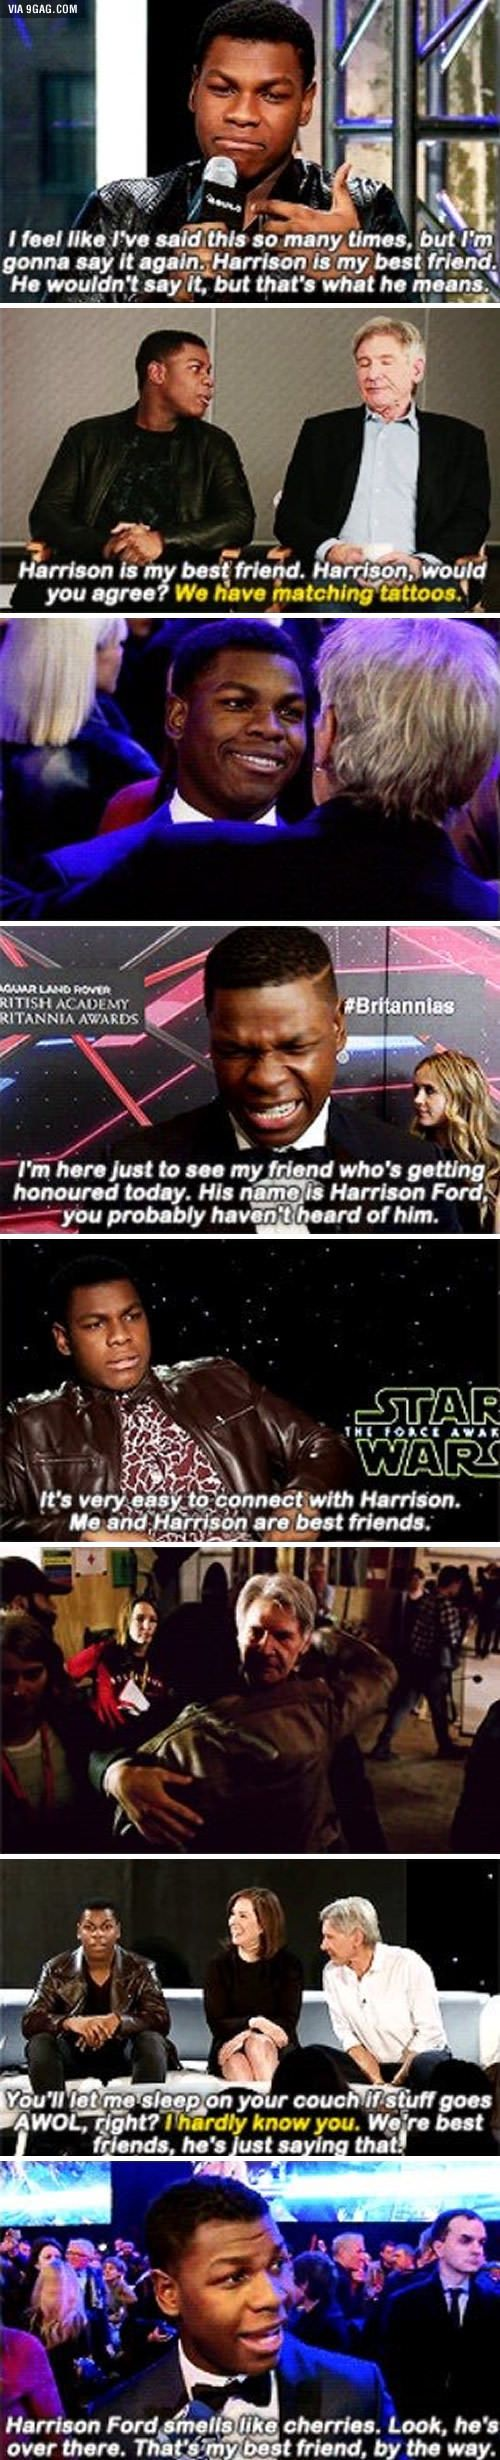 John Boyega seems to like Harrison Ford. In fact, it's possible they're best friends.